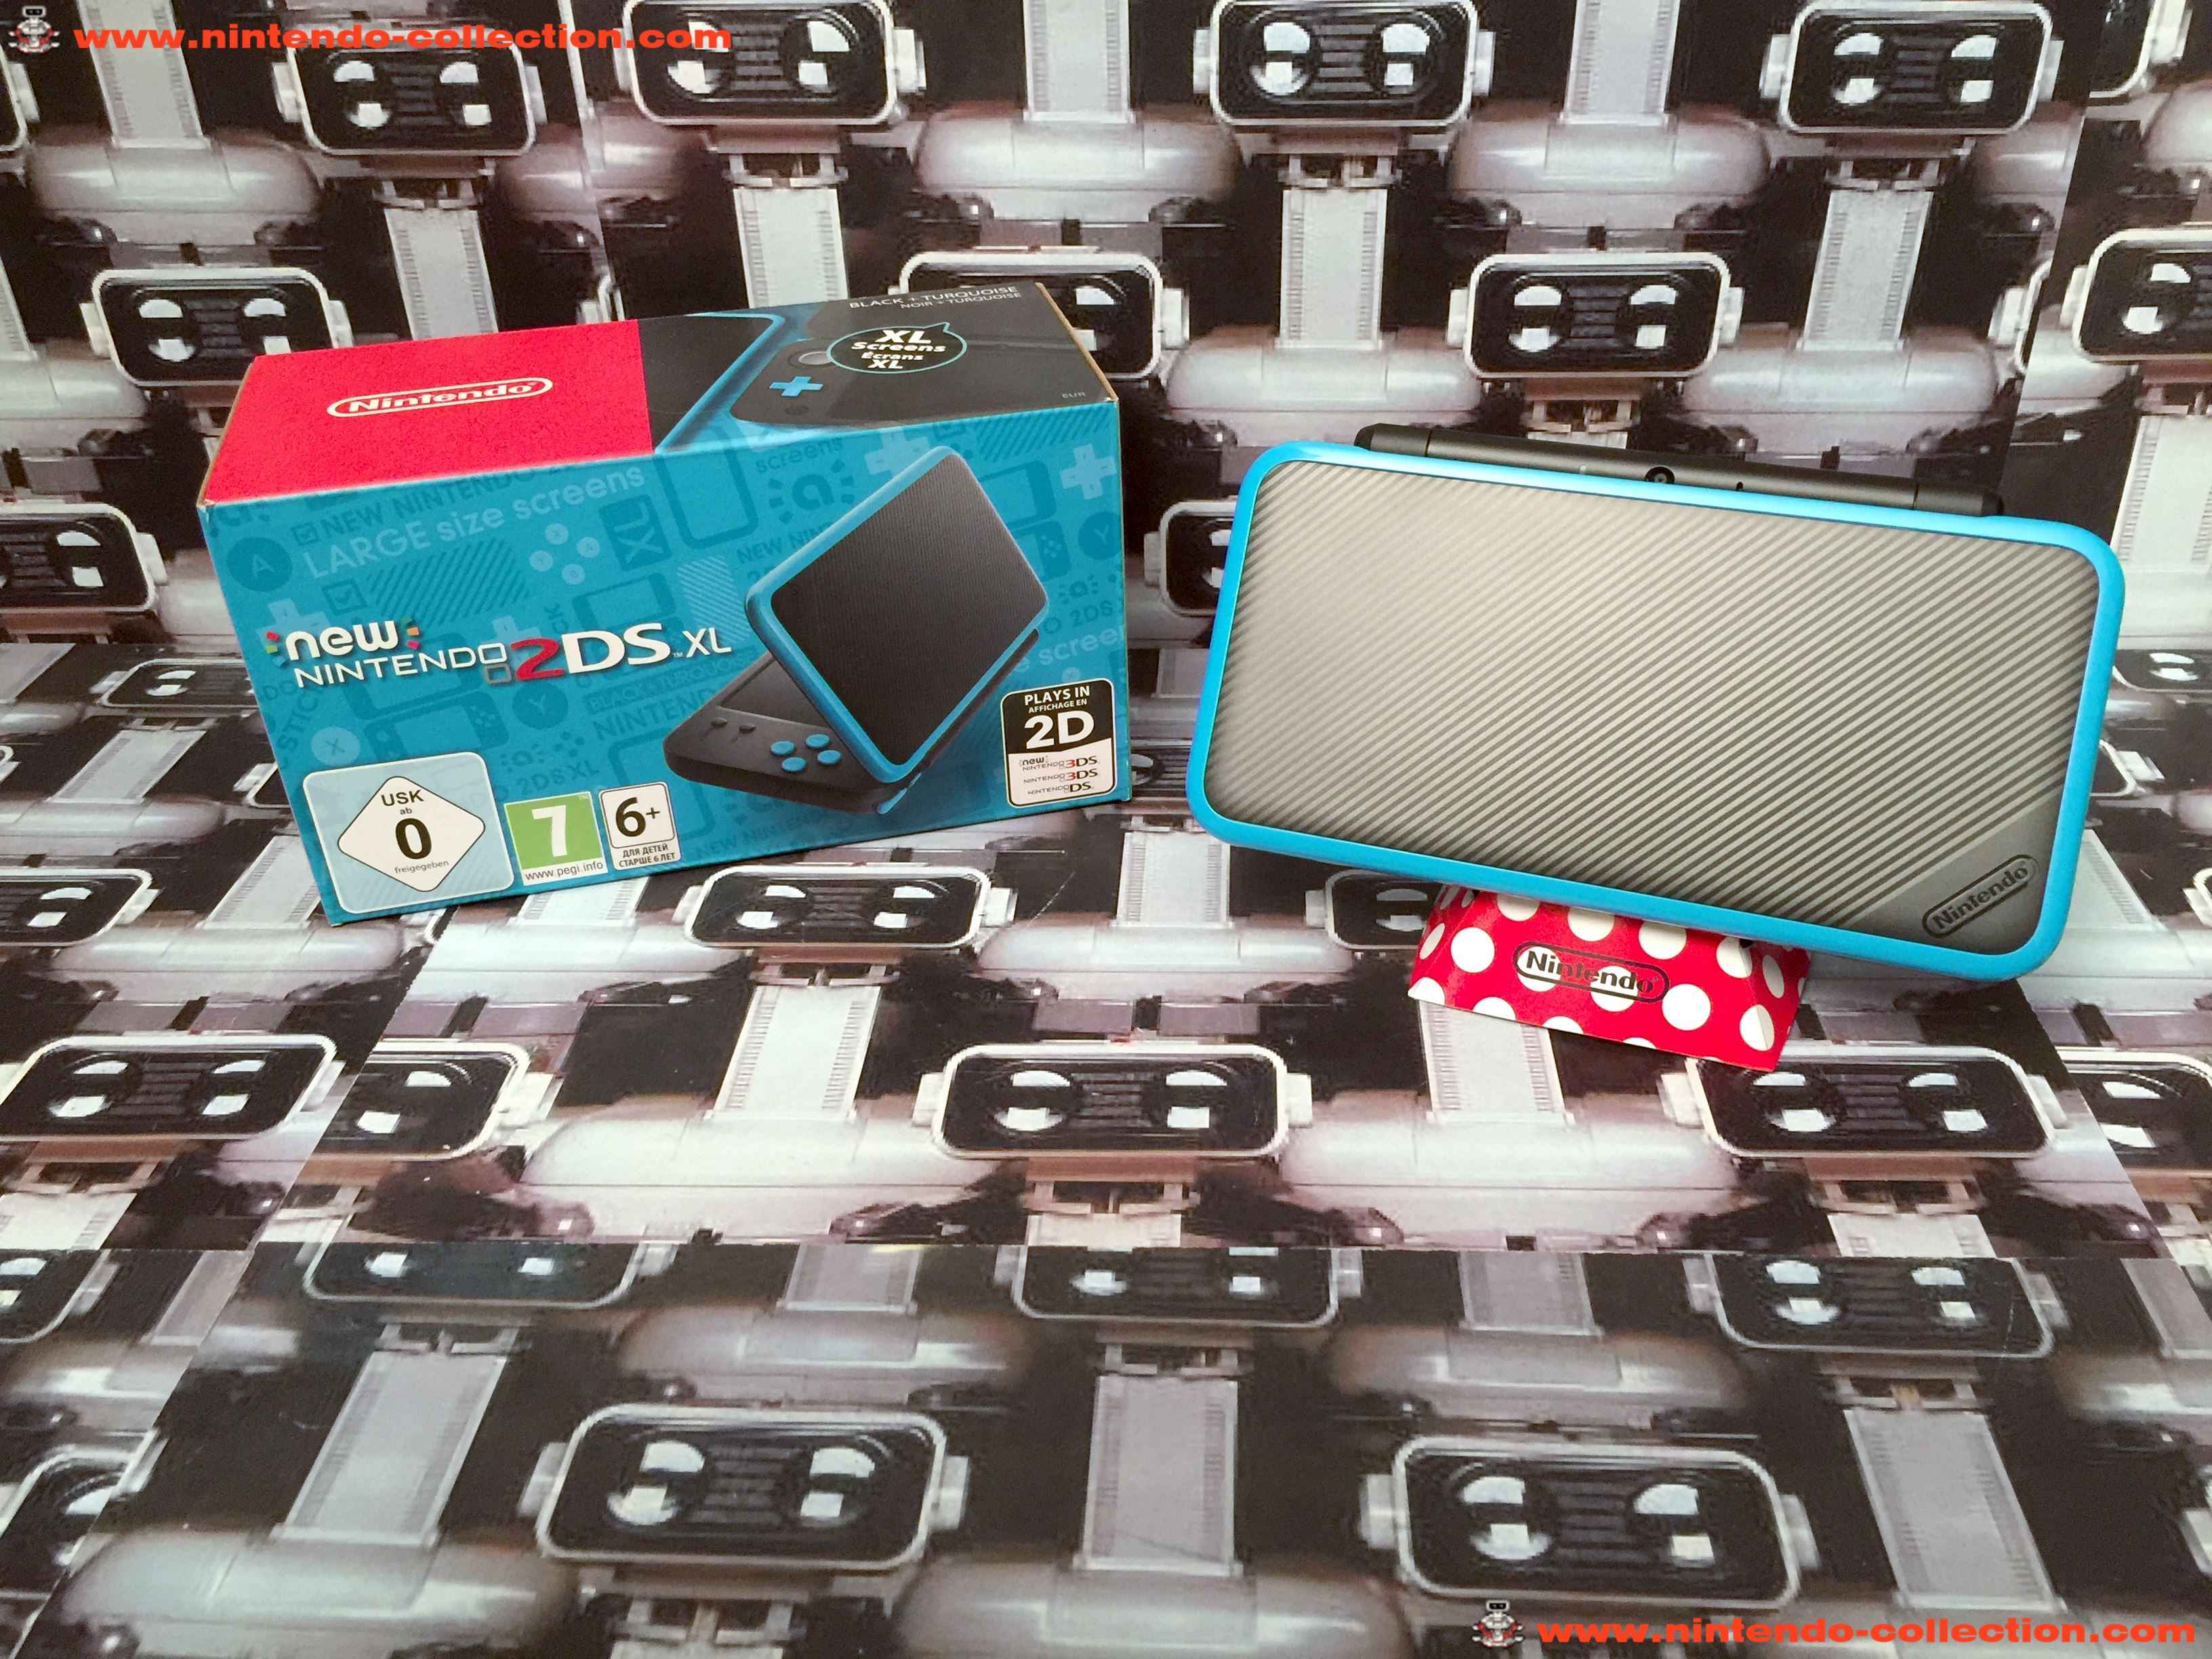 www.nintendo-collection.com - New Nintendo 2DS XL Black + Turquoise - Noir + Turquoise